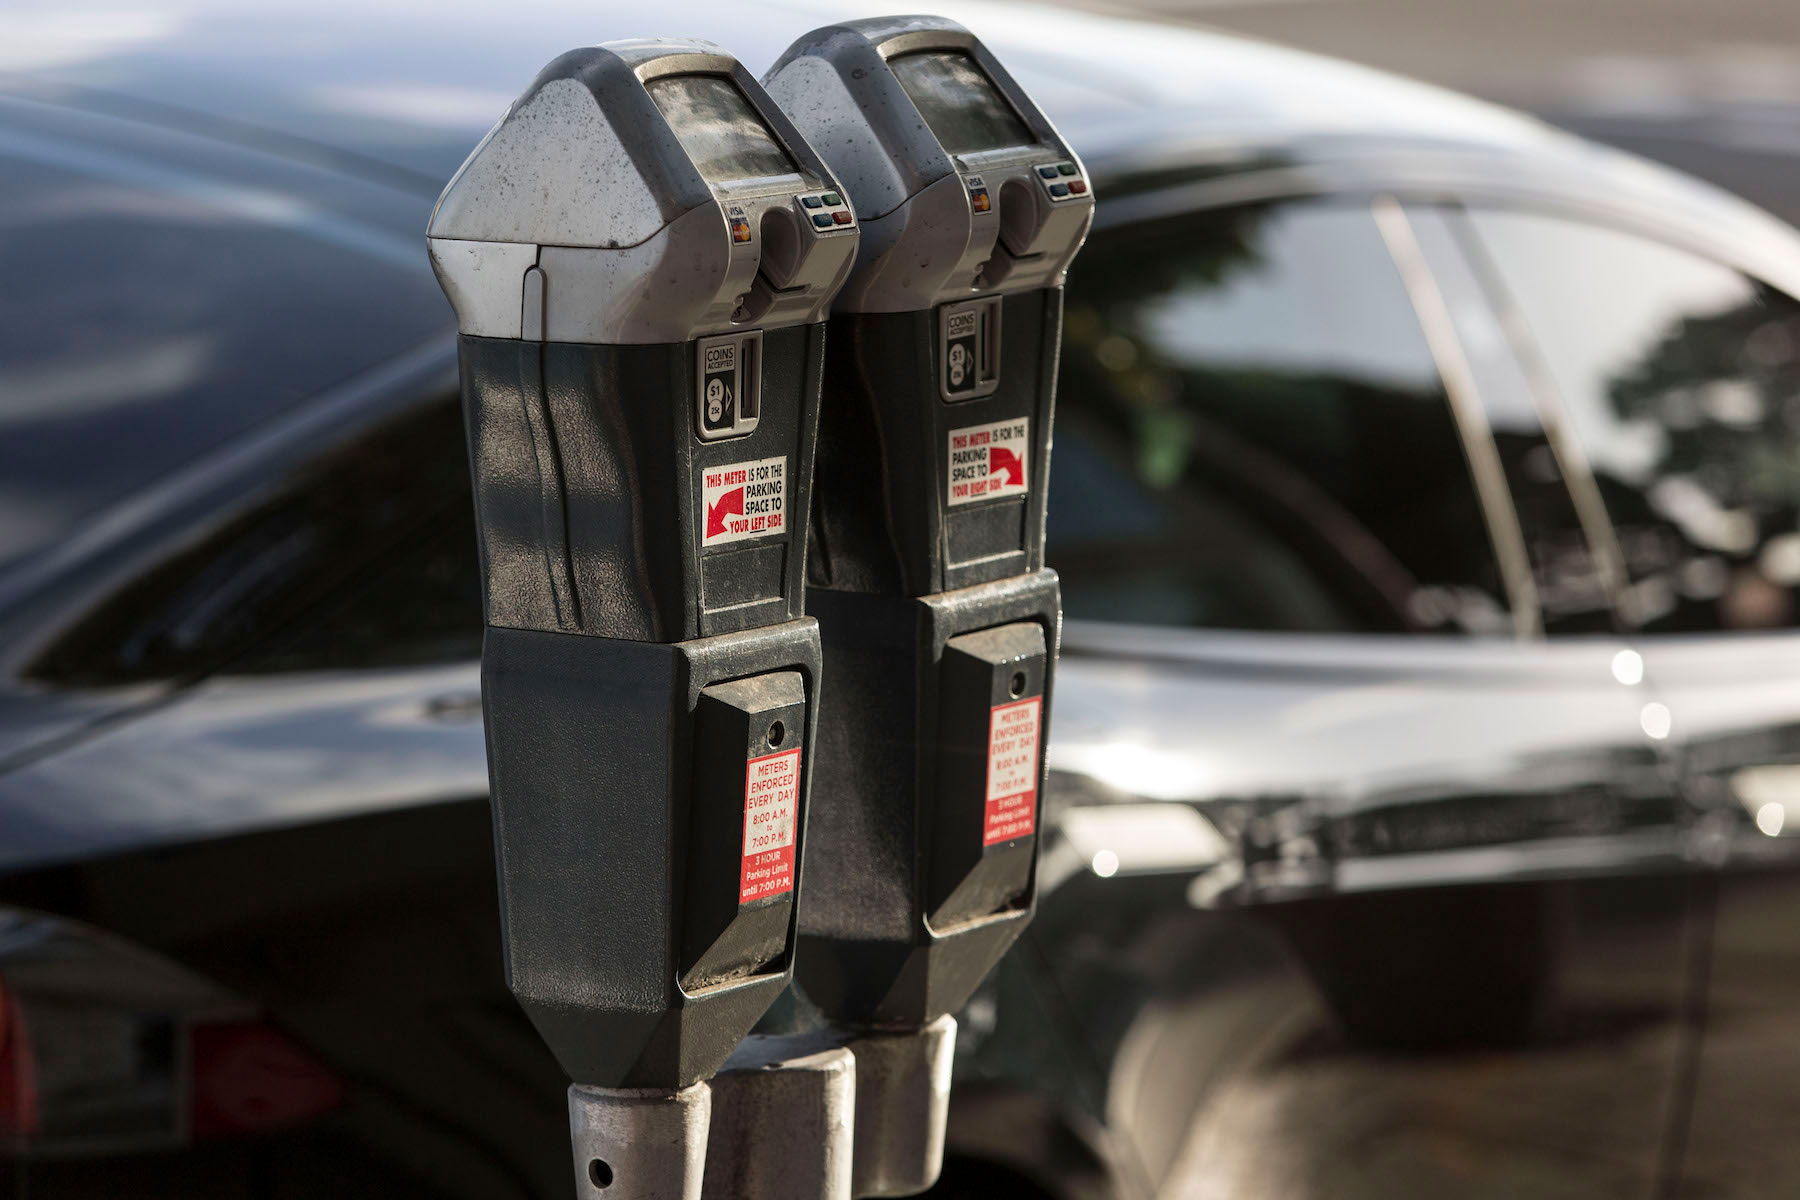 Council approves parking meters